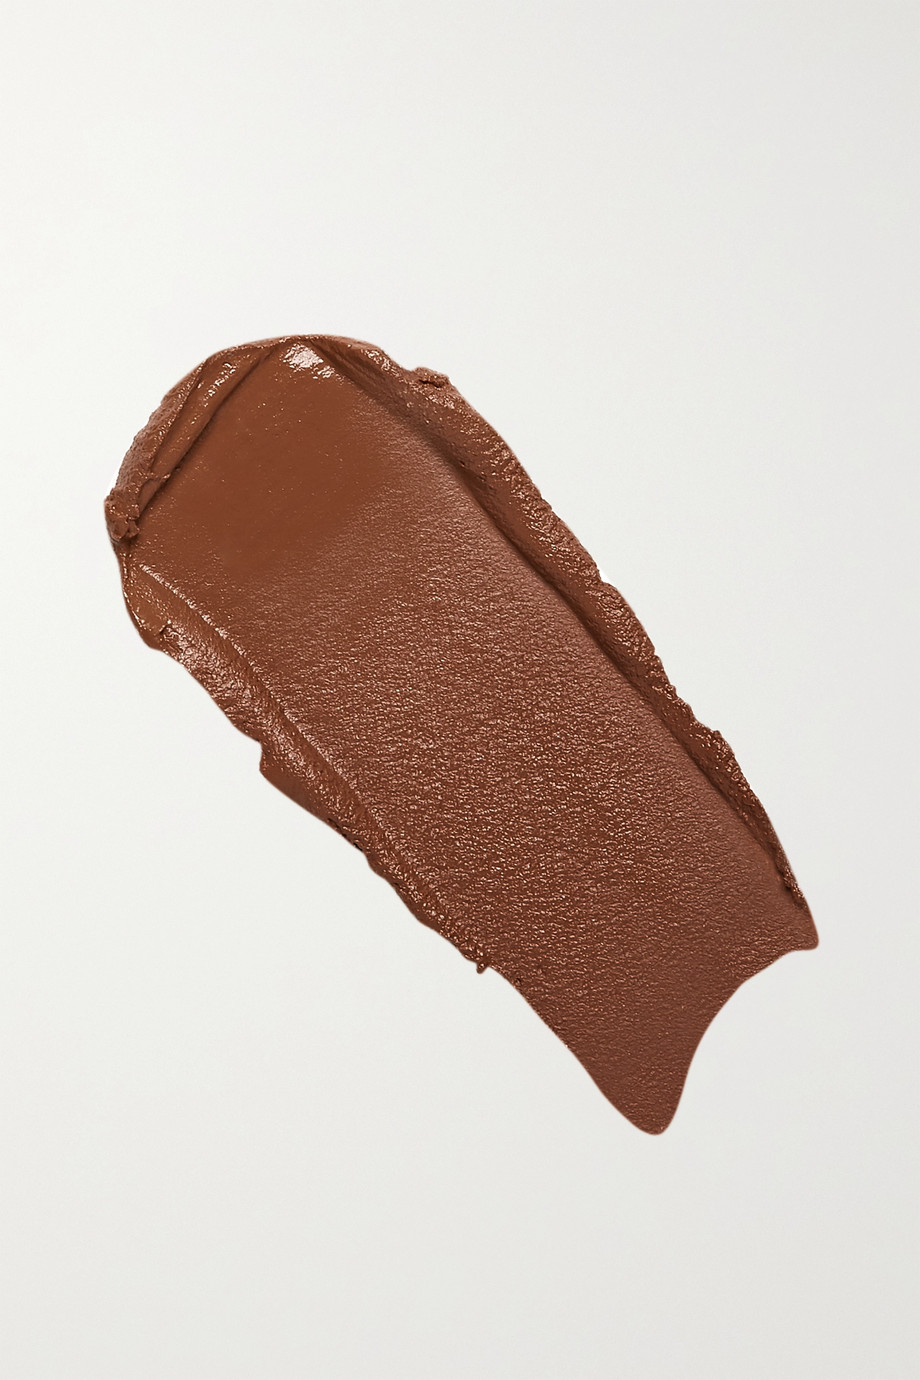 Kjaer Weis Invisible Touch Concealer - D340